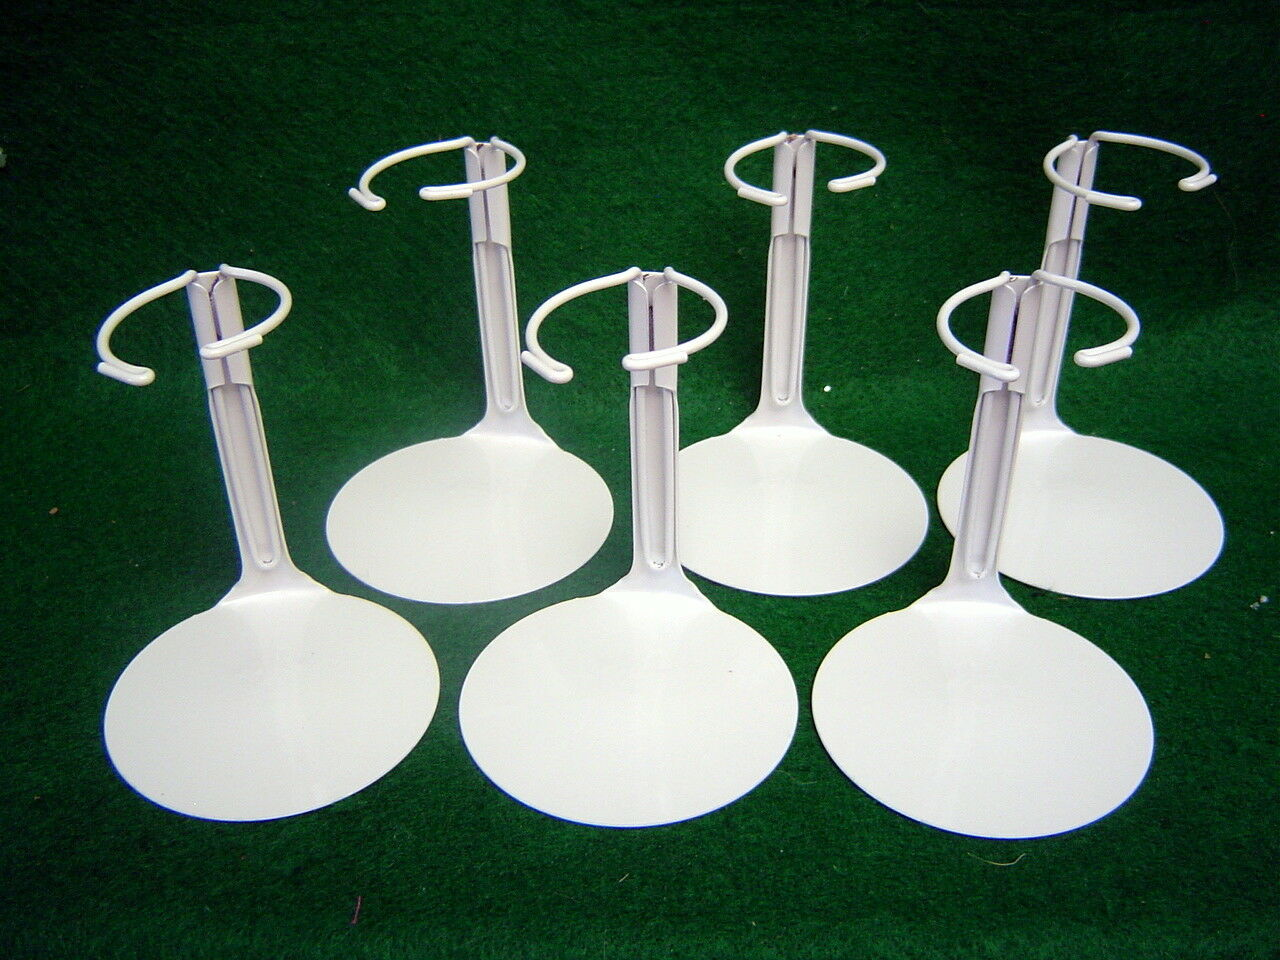 Doll Stands Set Of Six Light Gray Painted Metal For Dolls 3-5 Inches No.1001 - $8.99